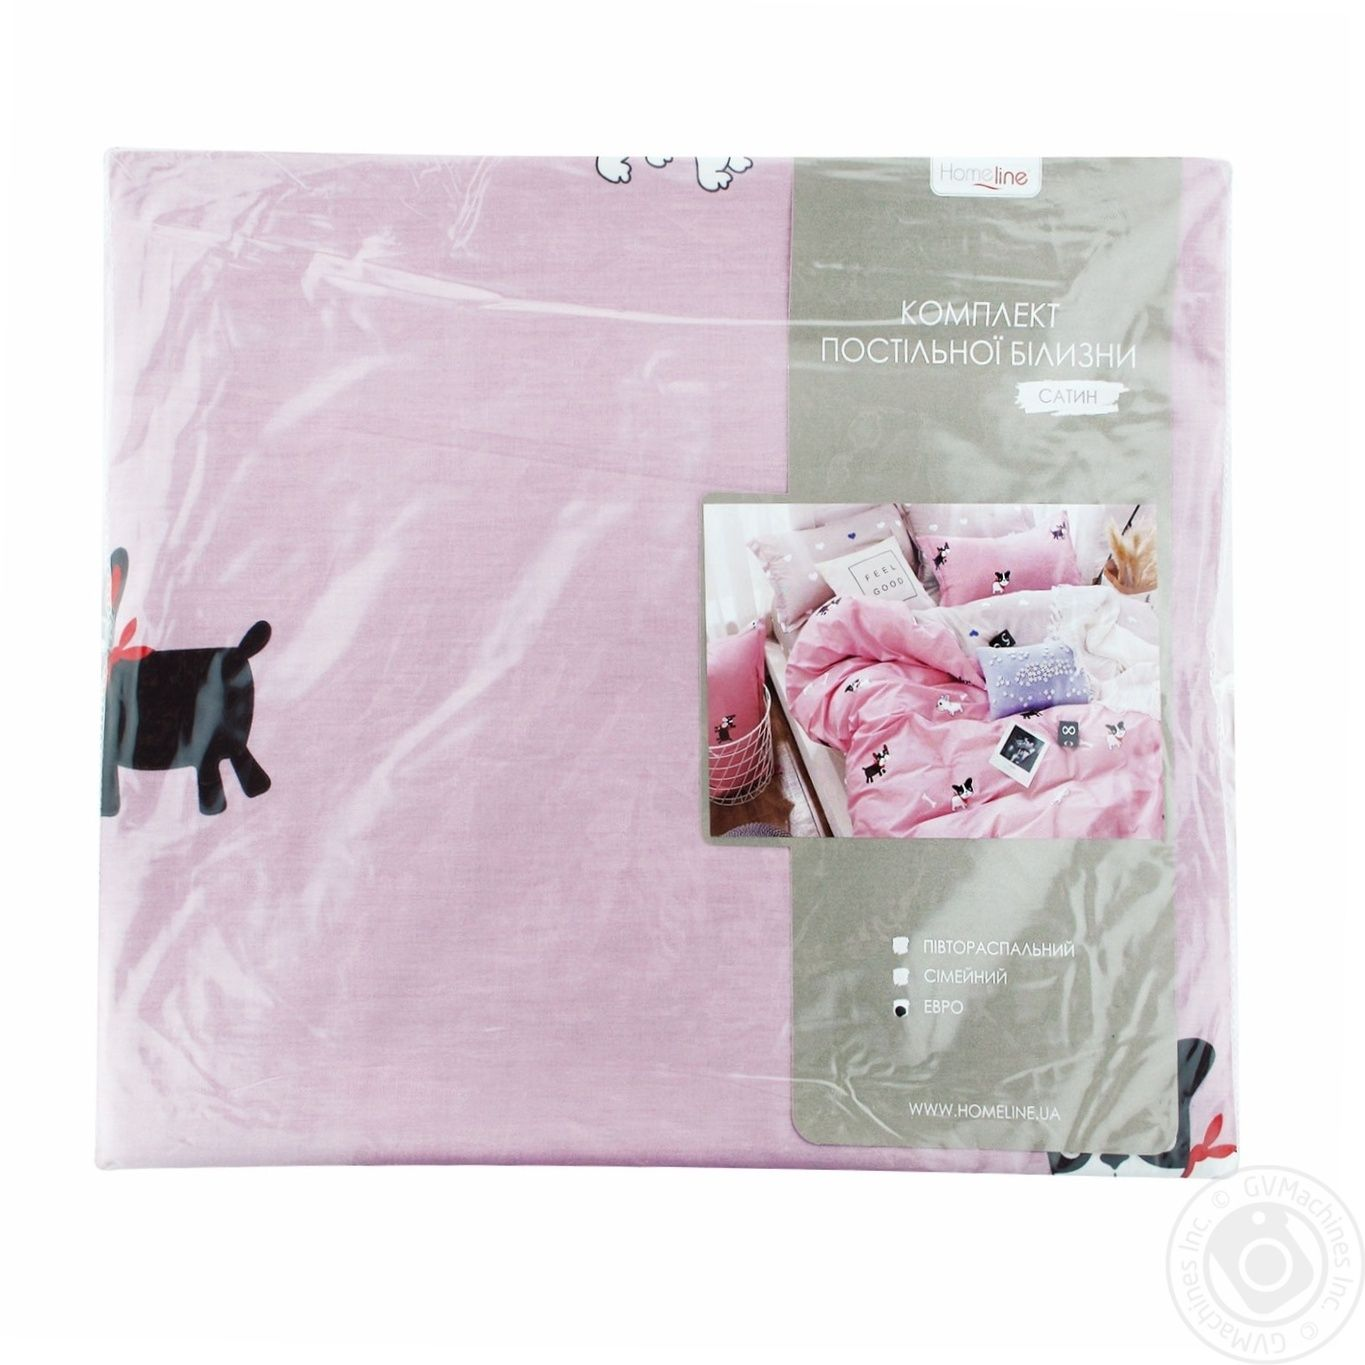 Home Line Happy Pink Bedding Set Euro Household Home Textiles Bedding Sets Bed Sets Zakaz Ua Official Online Grocery For Supermarkets In Ukraine Buy Home Line